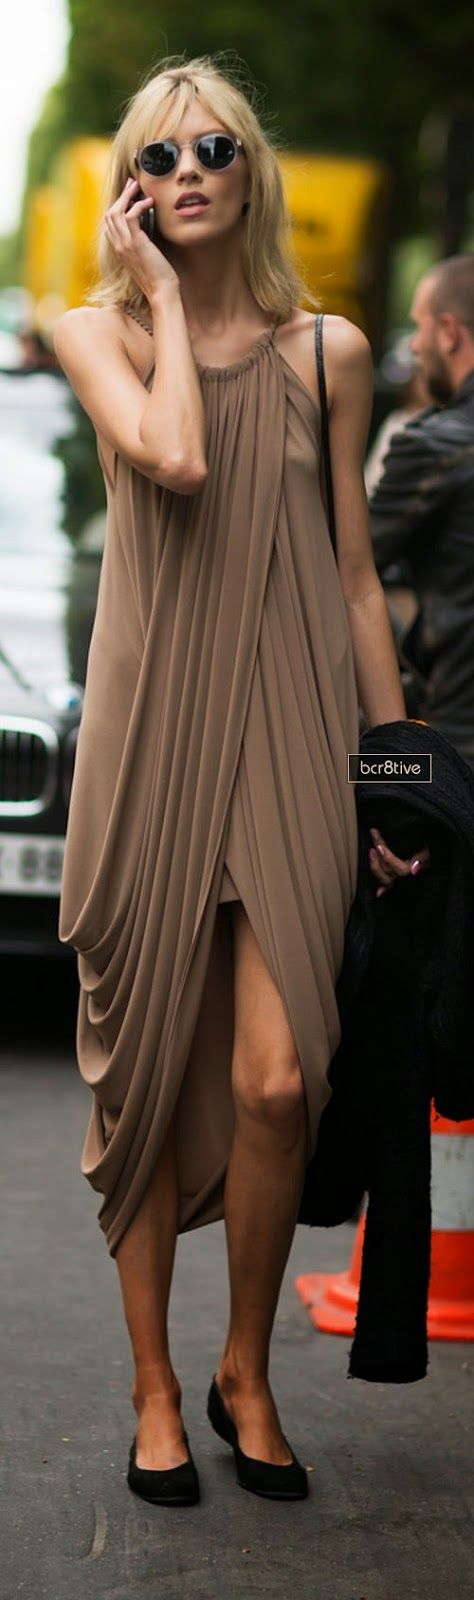 draped dress - street style #fashiontrends #trends #fashion #style